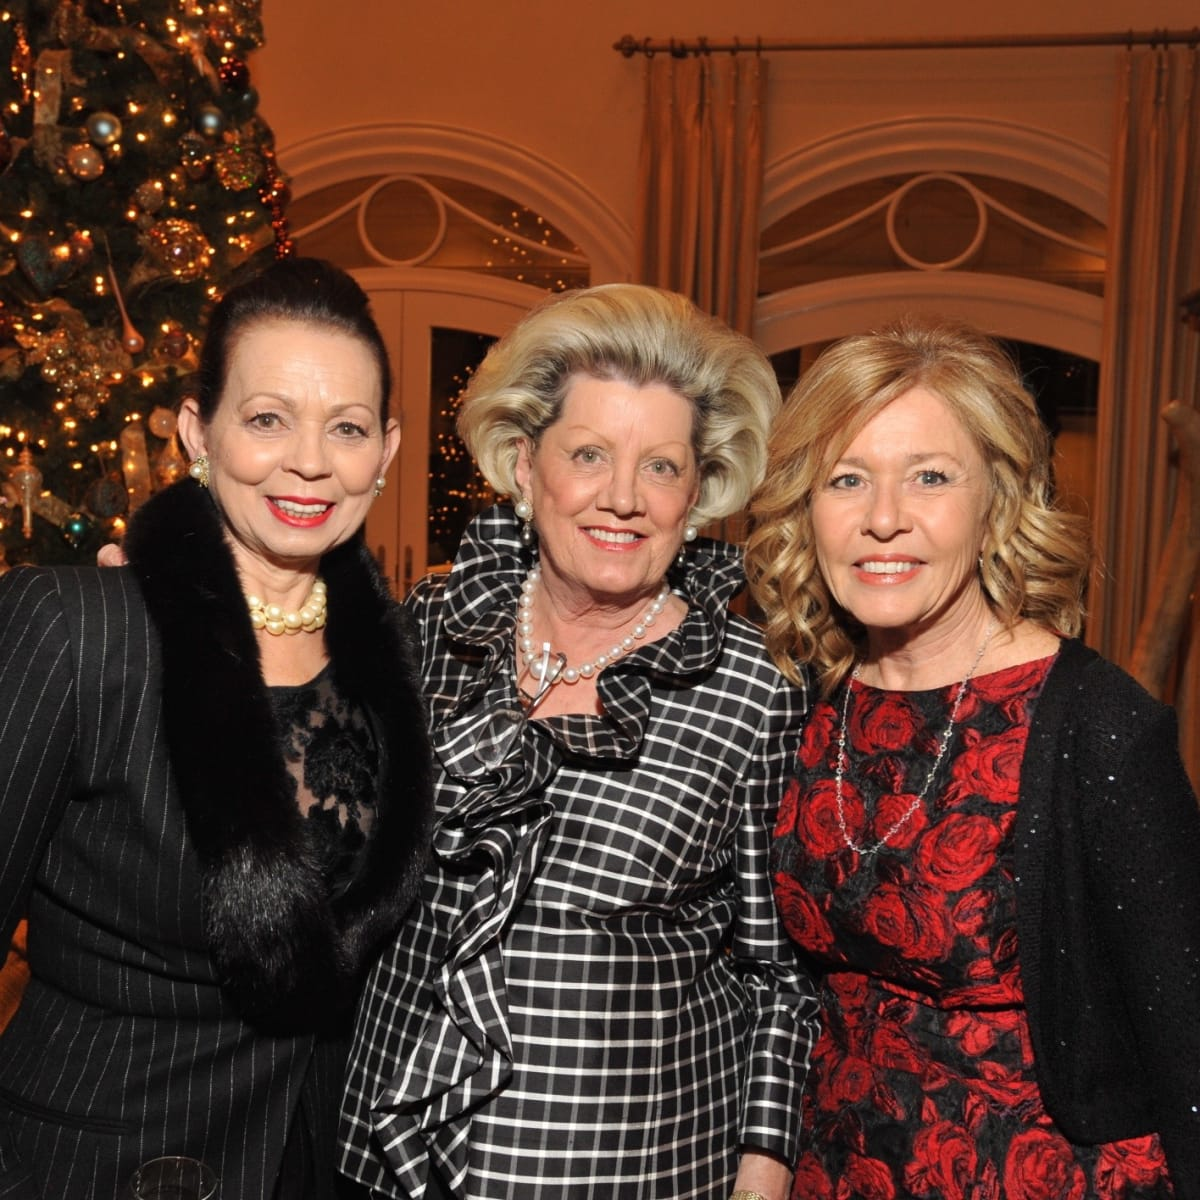 News, Kick-start gala kickoff, Dec. 2015, Danielle Ellis, Ann Brent, Rickie Prichard